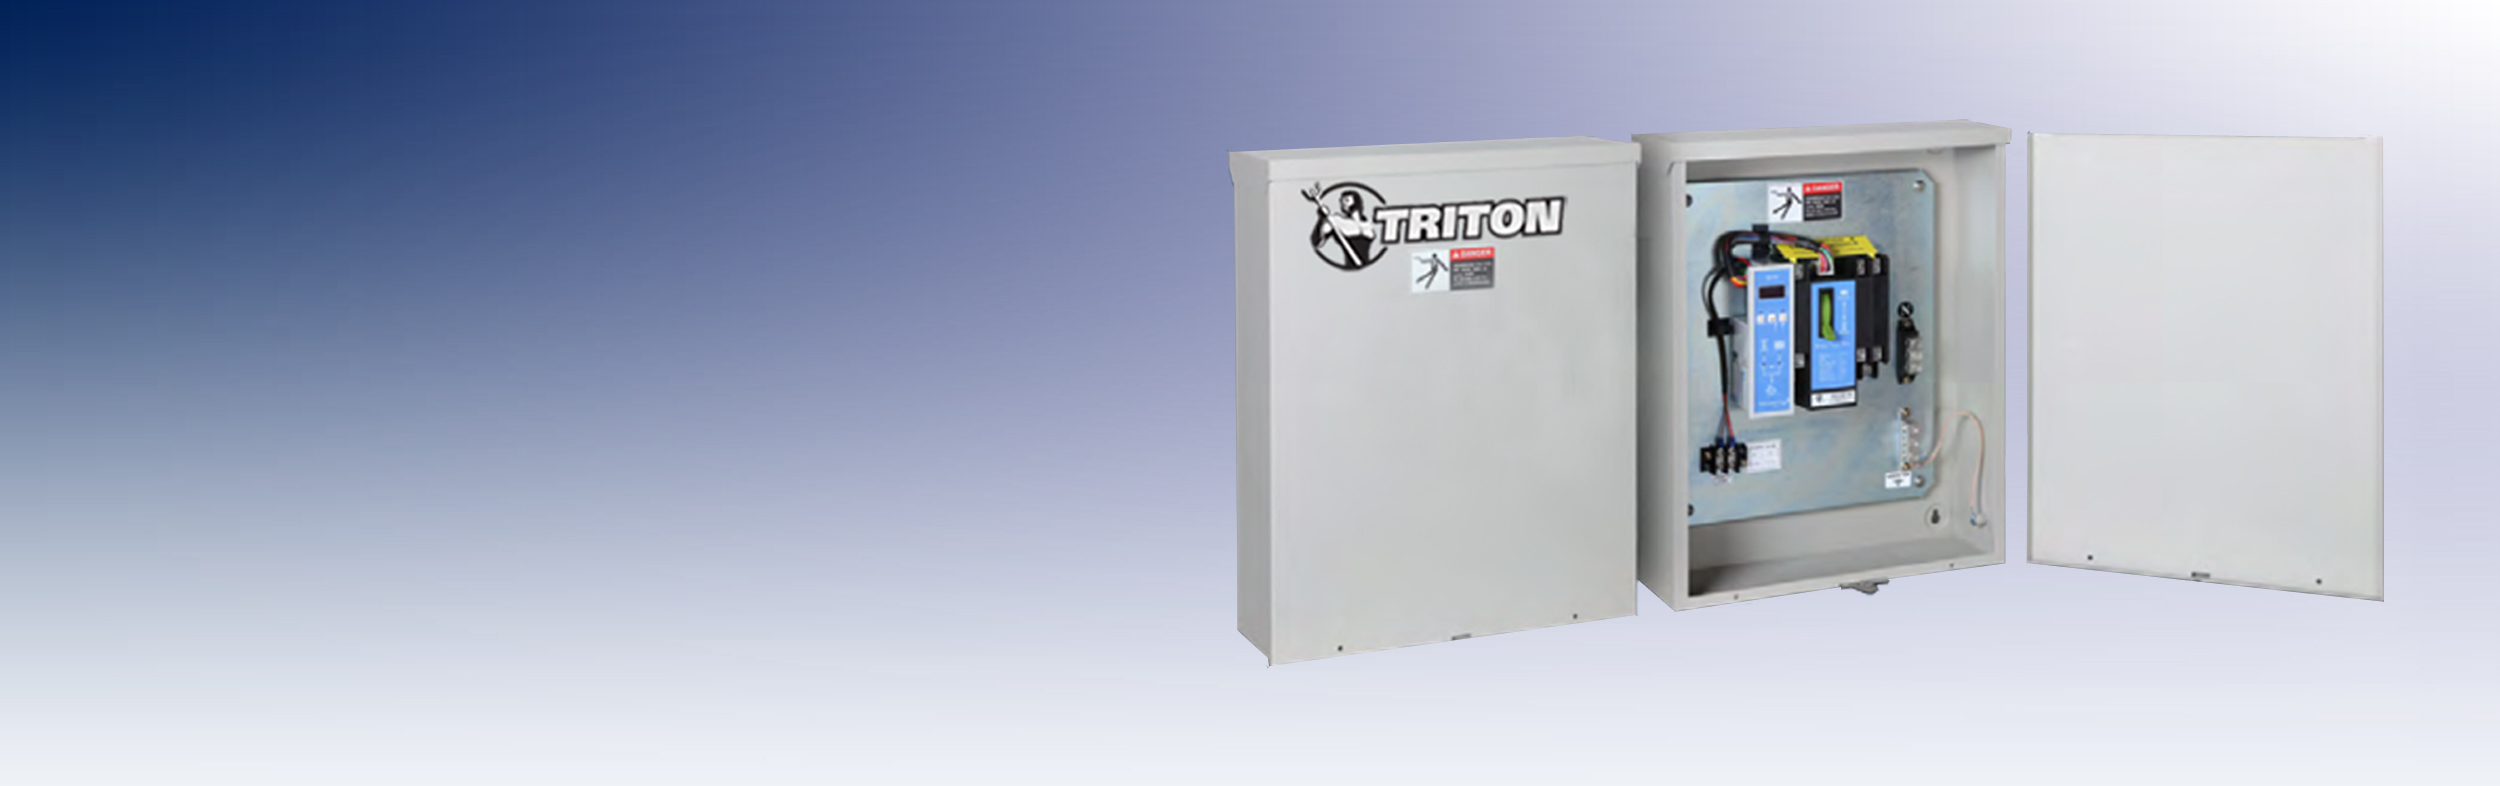 125 Amp Triton Automatic Transfer Switch Ul Details About Ats Controller Build Your